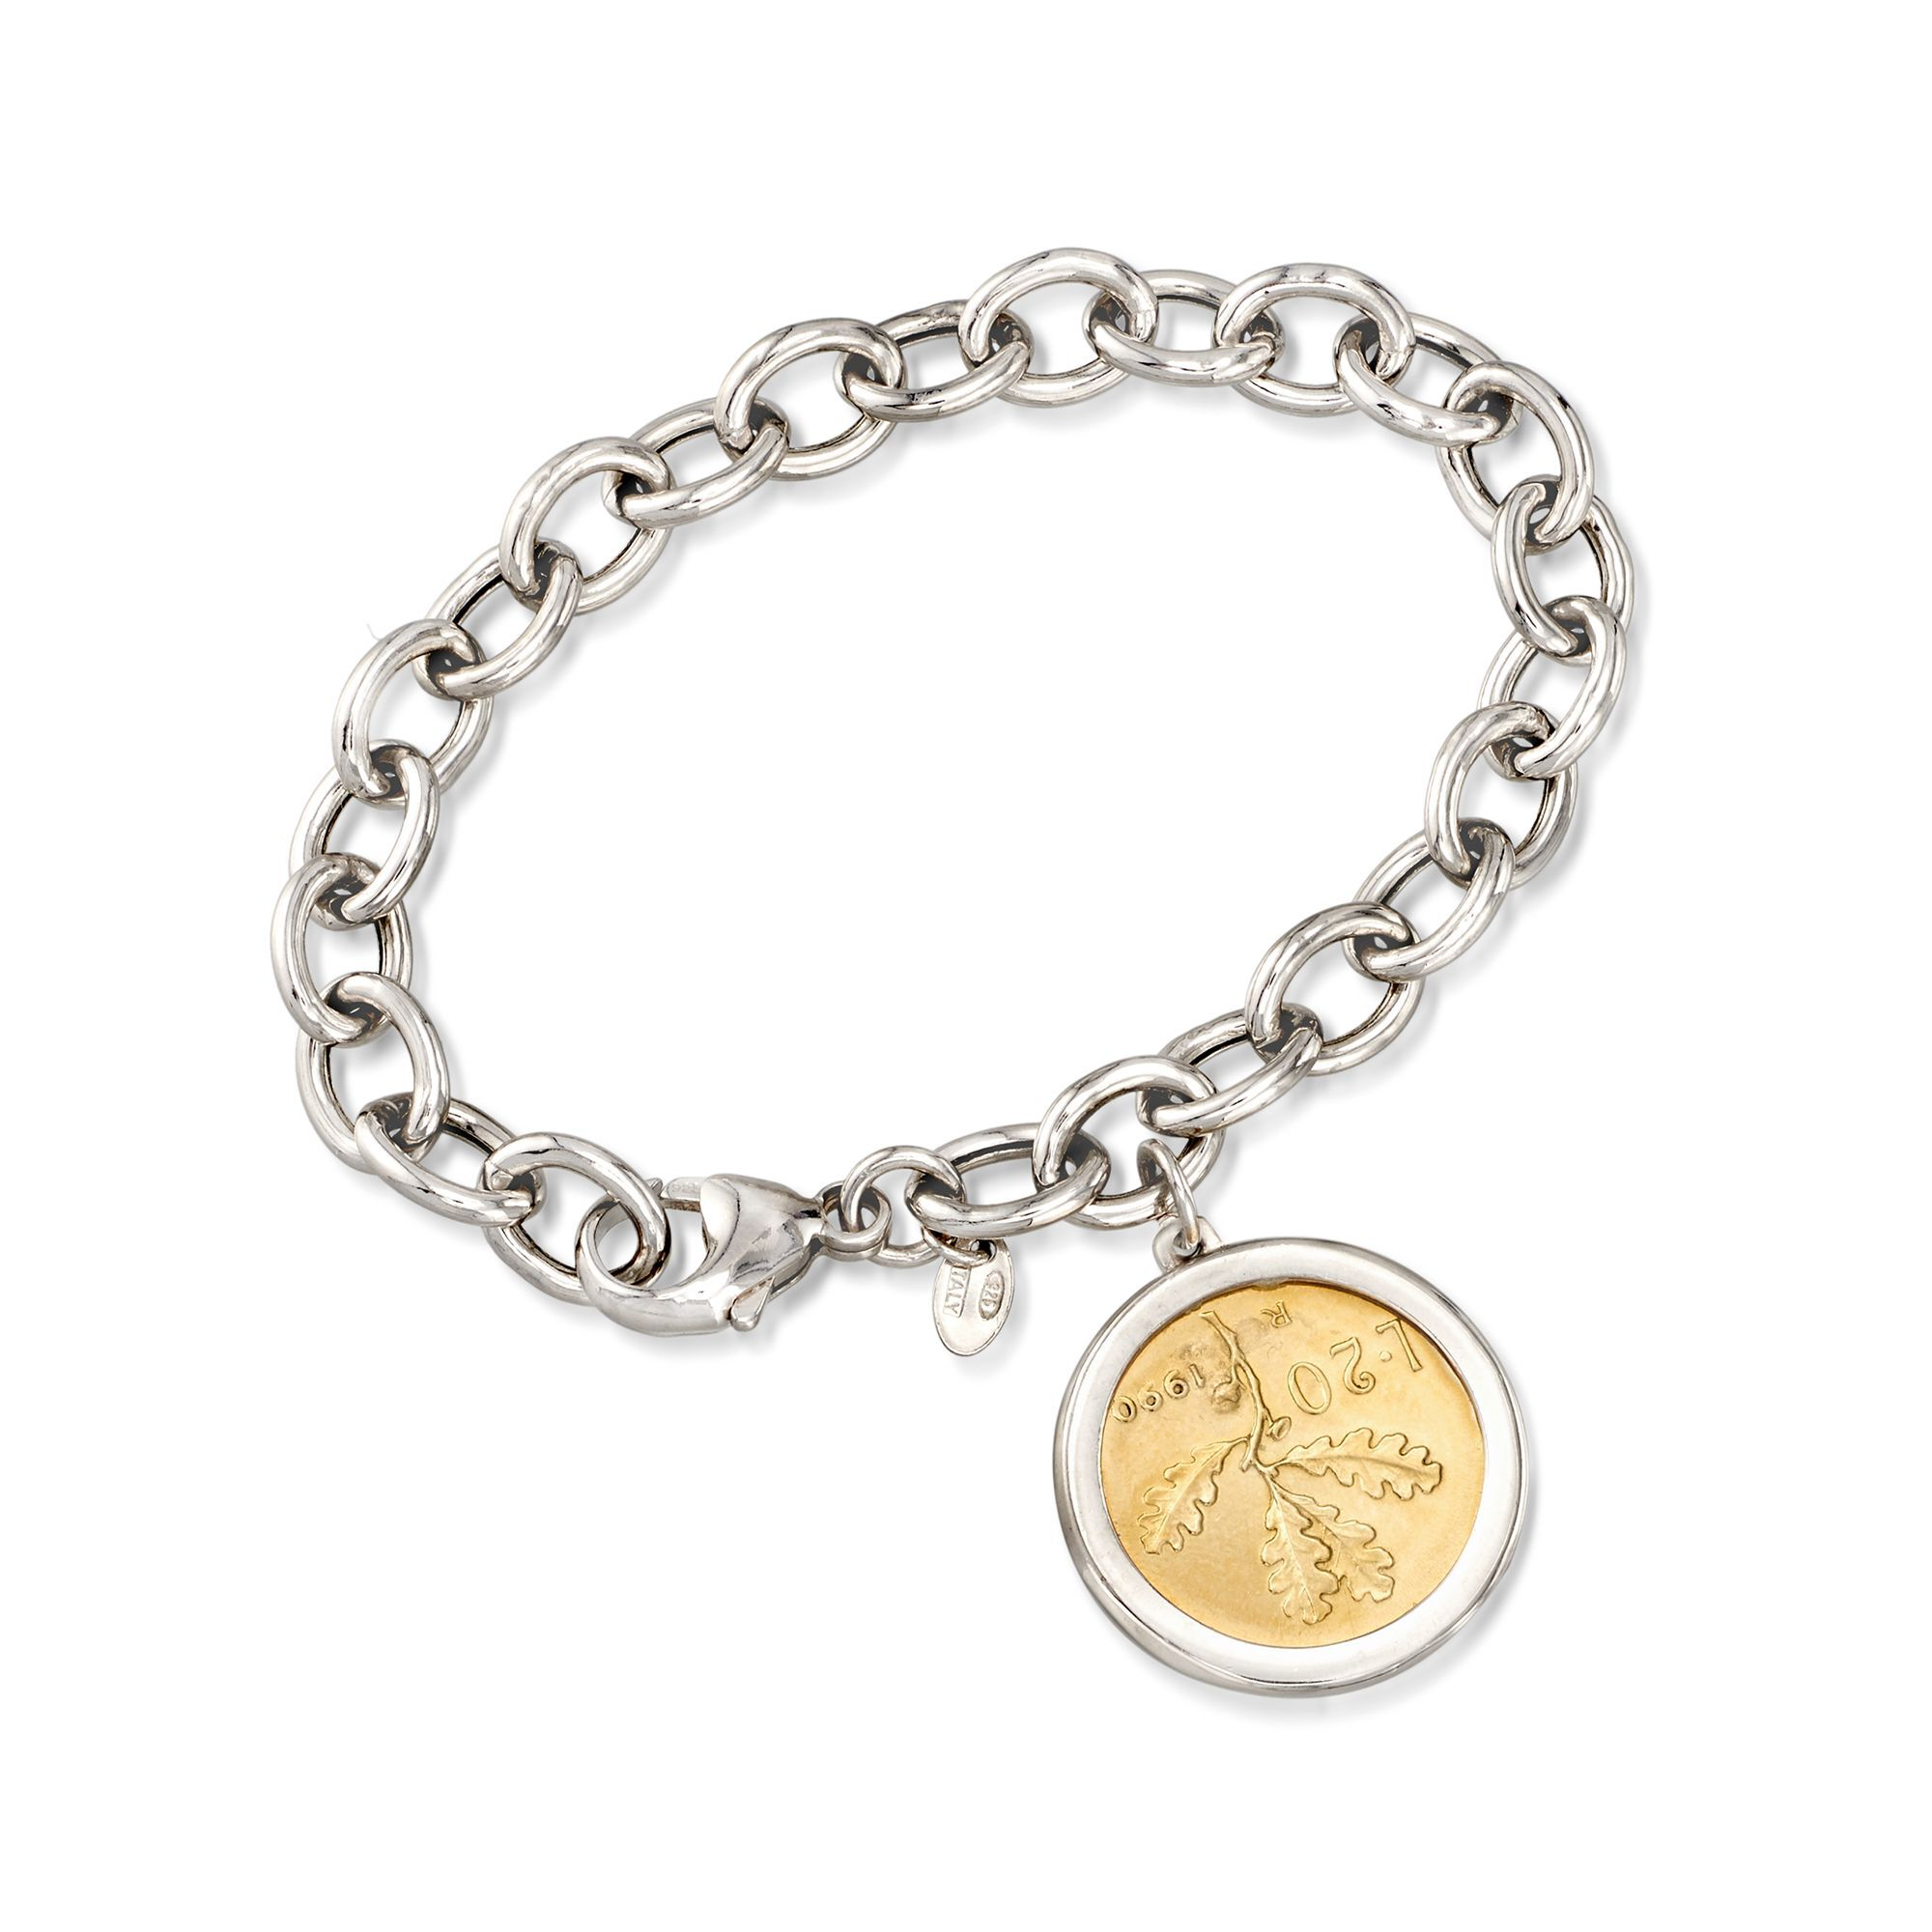 alex ani pinecone bracelet bangles bangle plan international charm bracelets super and front for